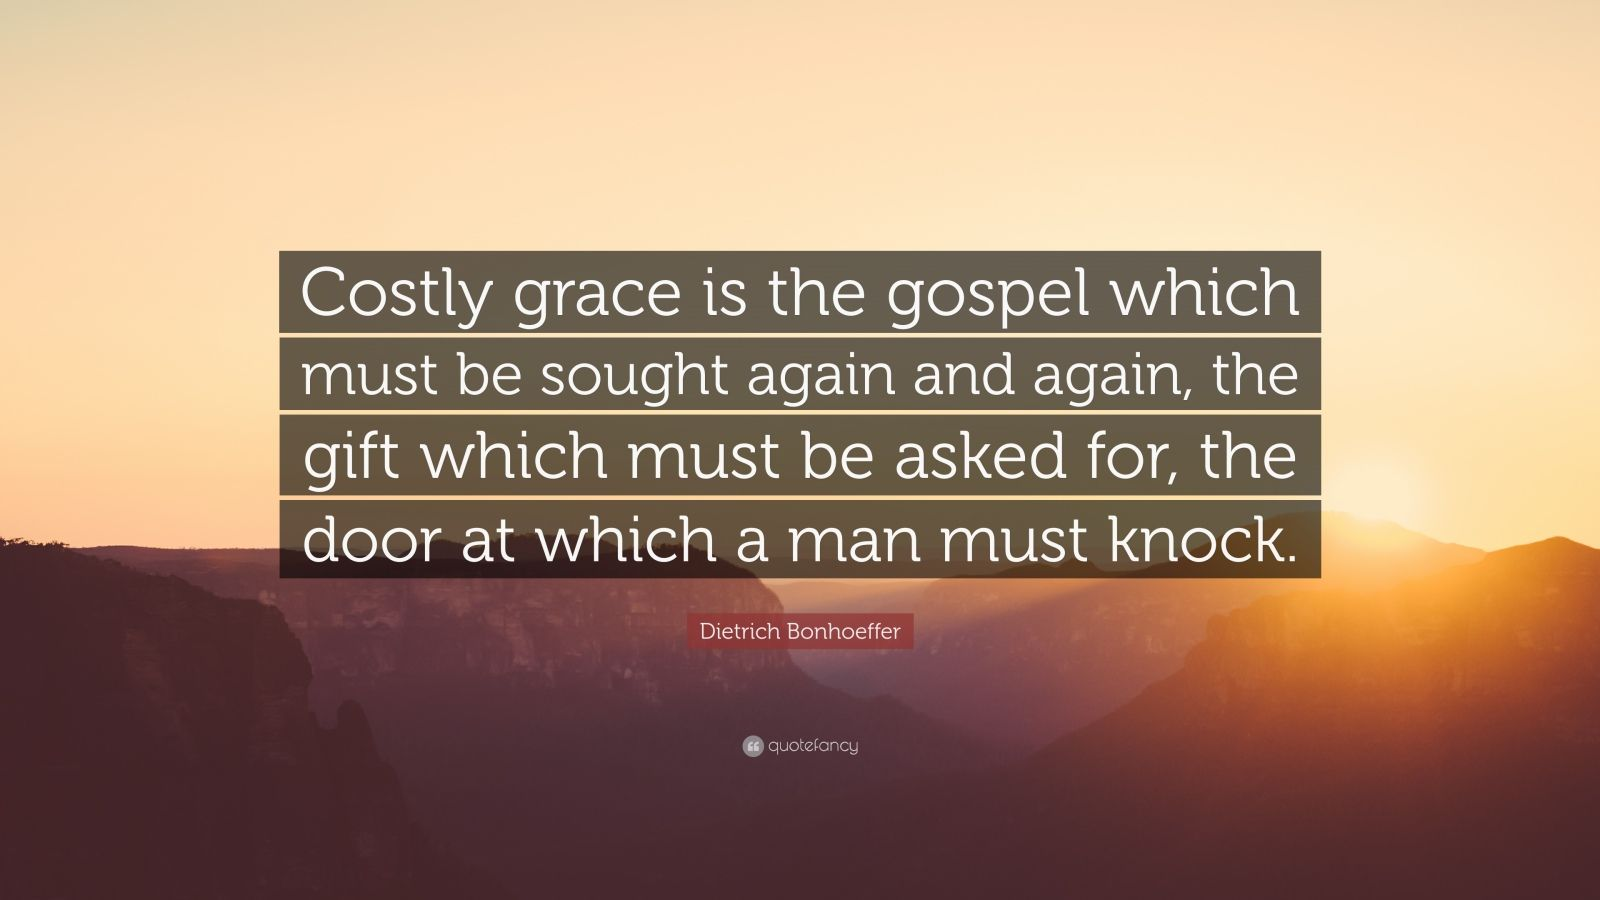 """Dietrich Bonhoeffer Quote: """"Costly grace is the gospel which must be sought again and again, the gift which must be asked for, the door at which a man must knock."""""""